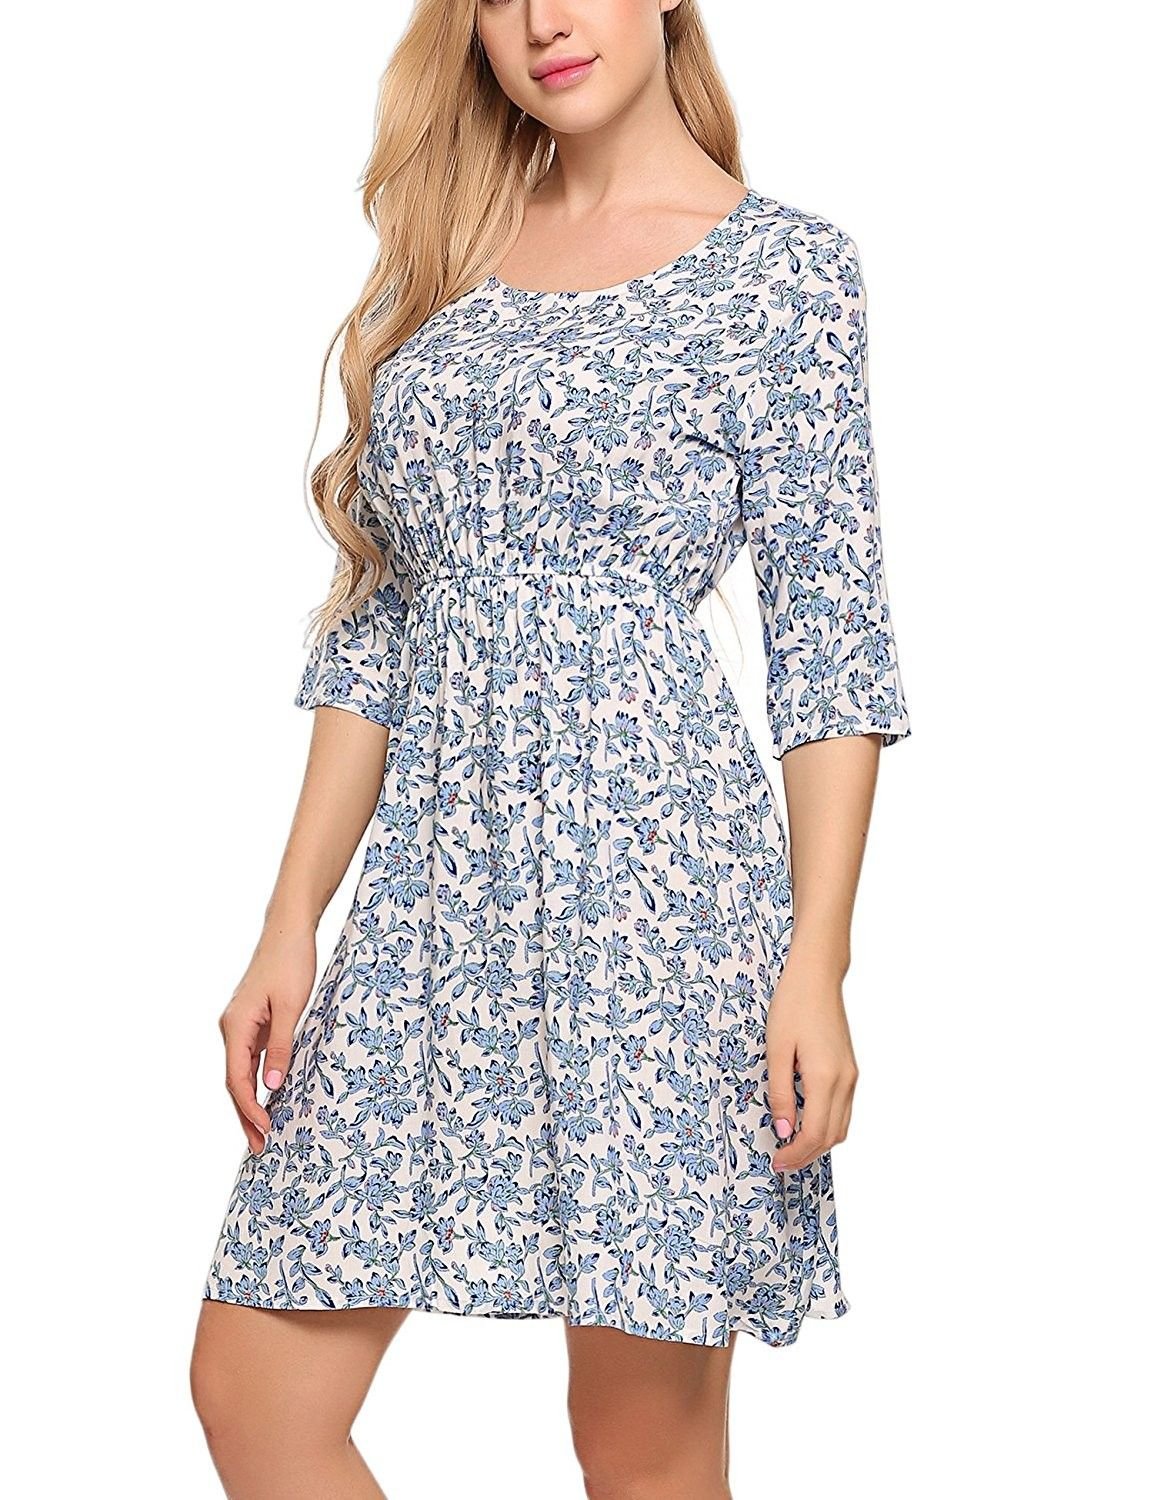 09381fdc1 Women's Clothing, Tops & Tees, Tunics, Women's Print Tunic Top Dress- 3/4  Sleeve Summer Casual T Shirt Midi Dresses - Light Blue - C3183W8H7C7 #women  ...